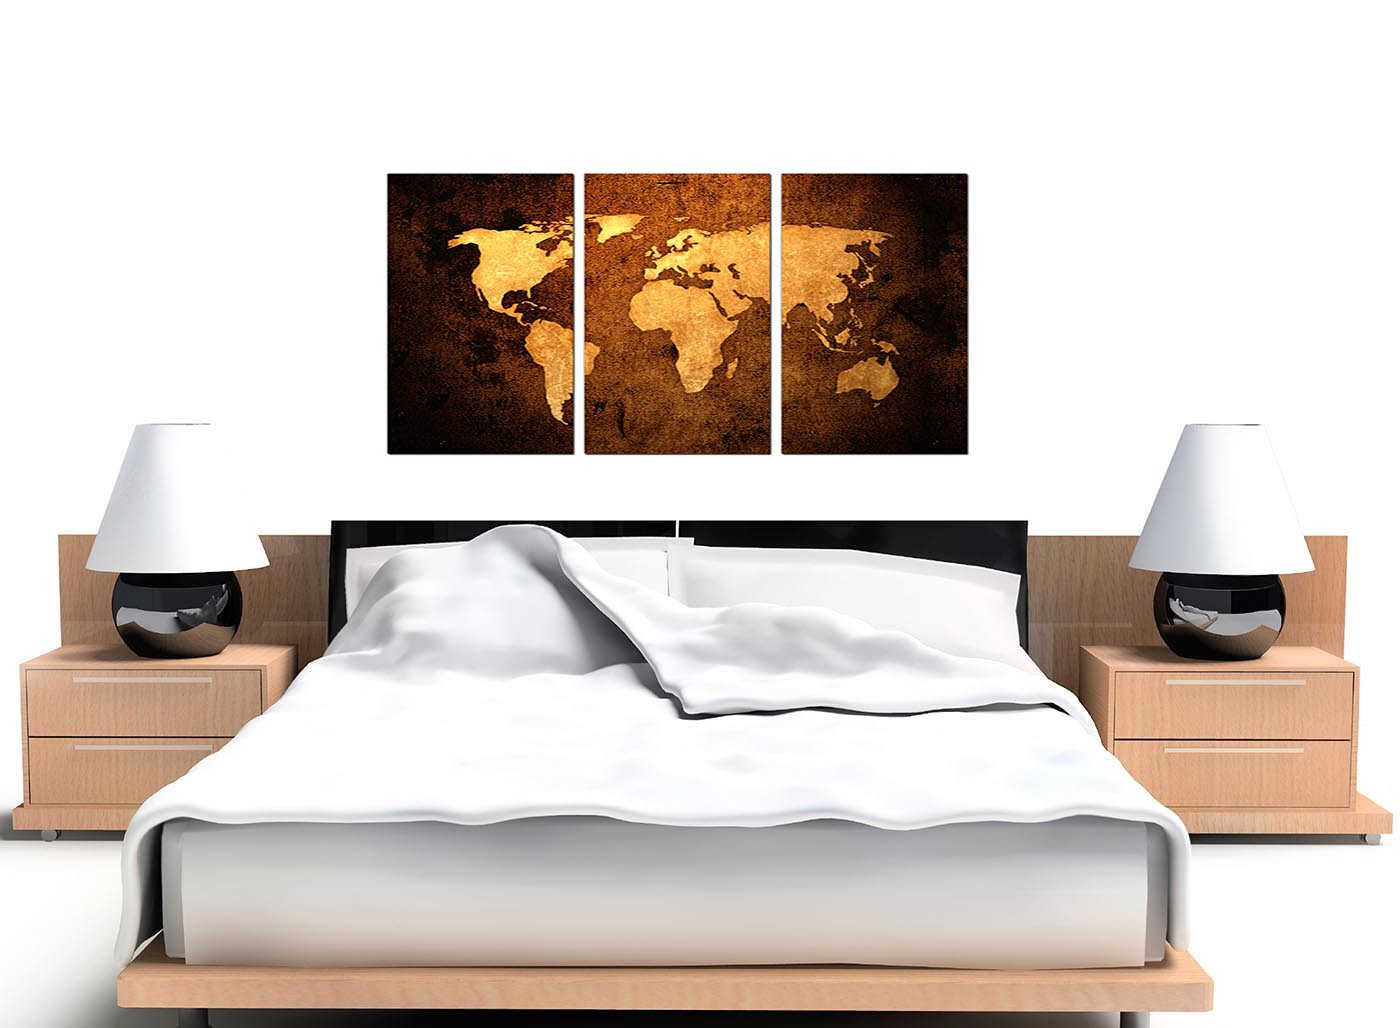 Vintage world map canvas wall art set of 3 for your bedroom modern vintage old world map brown cream canvas set of 3 125cm 3188 gumiabroncs Gallery